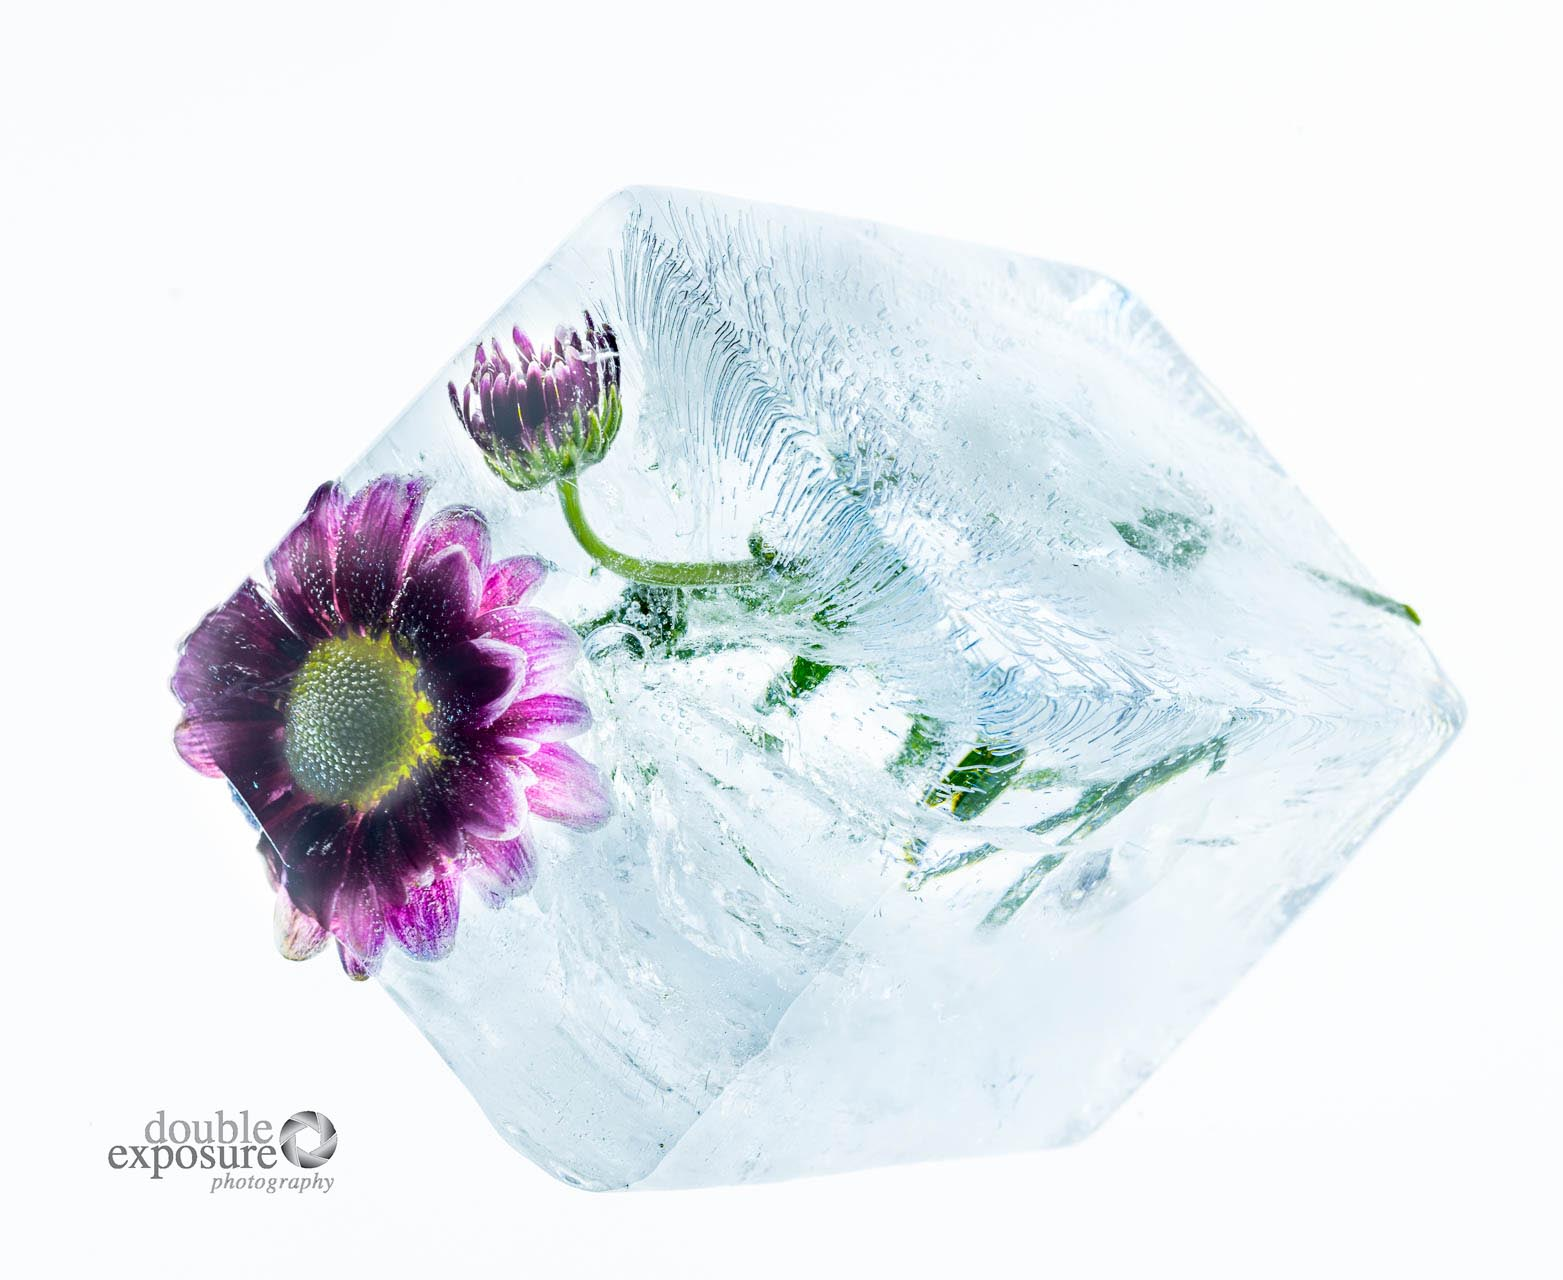 flowers frozen in a giant ice cube